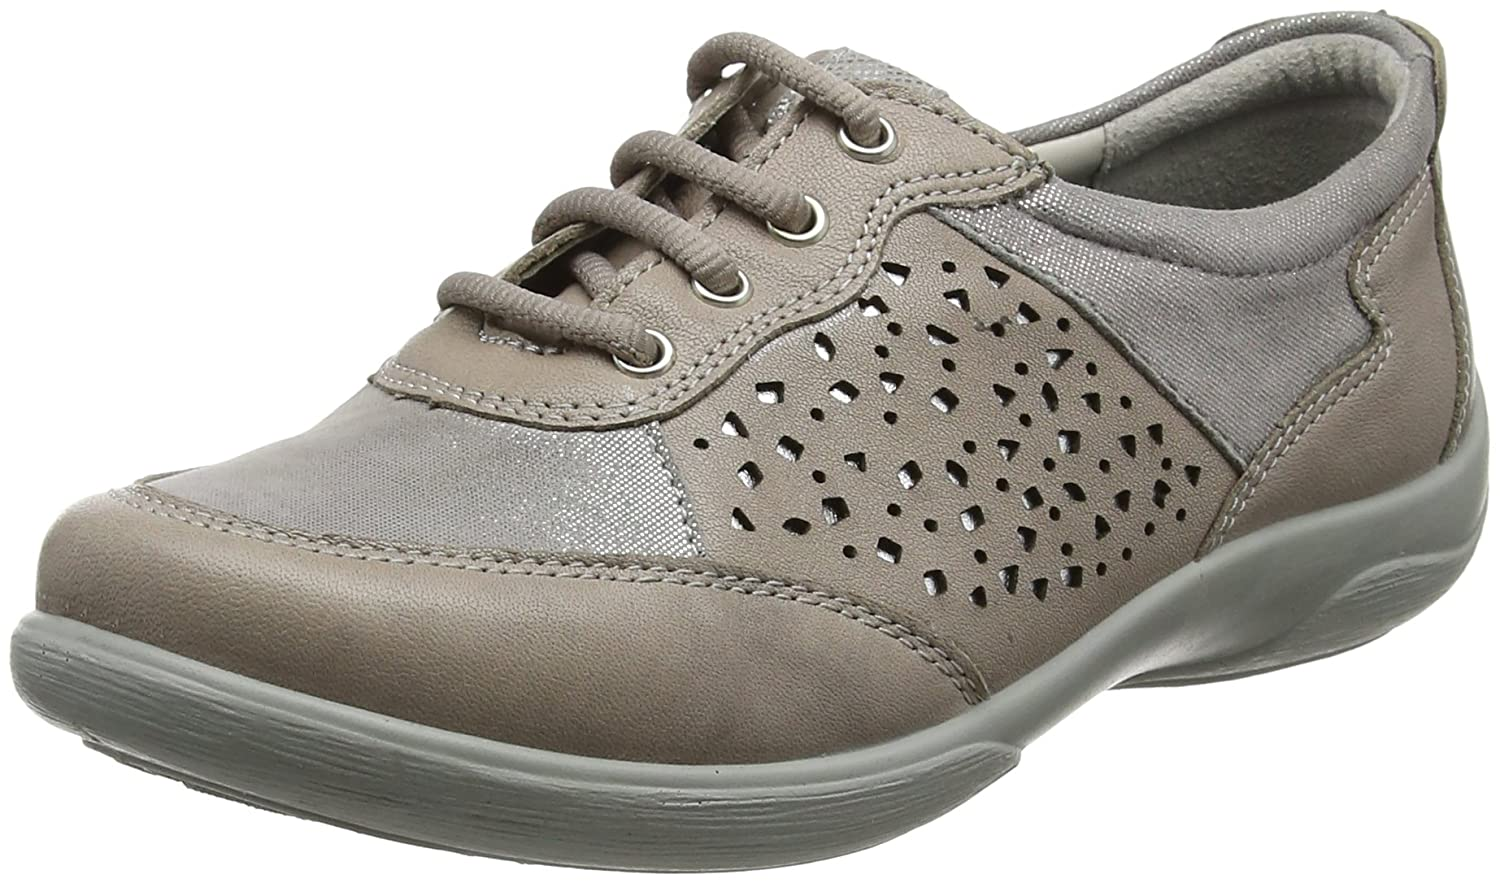 Padders Damen Oxfords, Harp Oxfords, Damen Grau (Grau Multi 97) 82f4a5